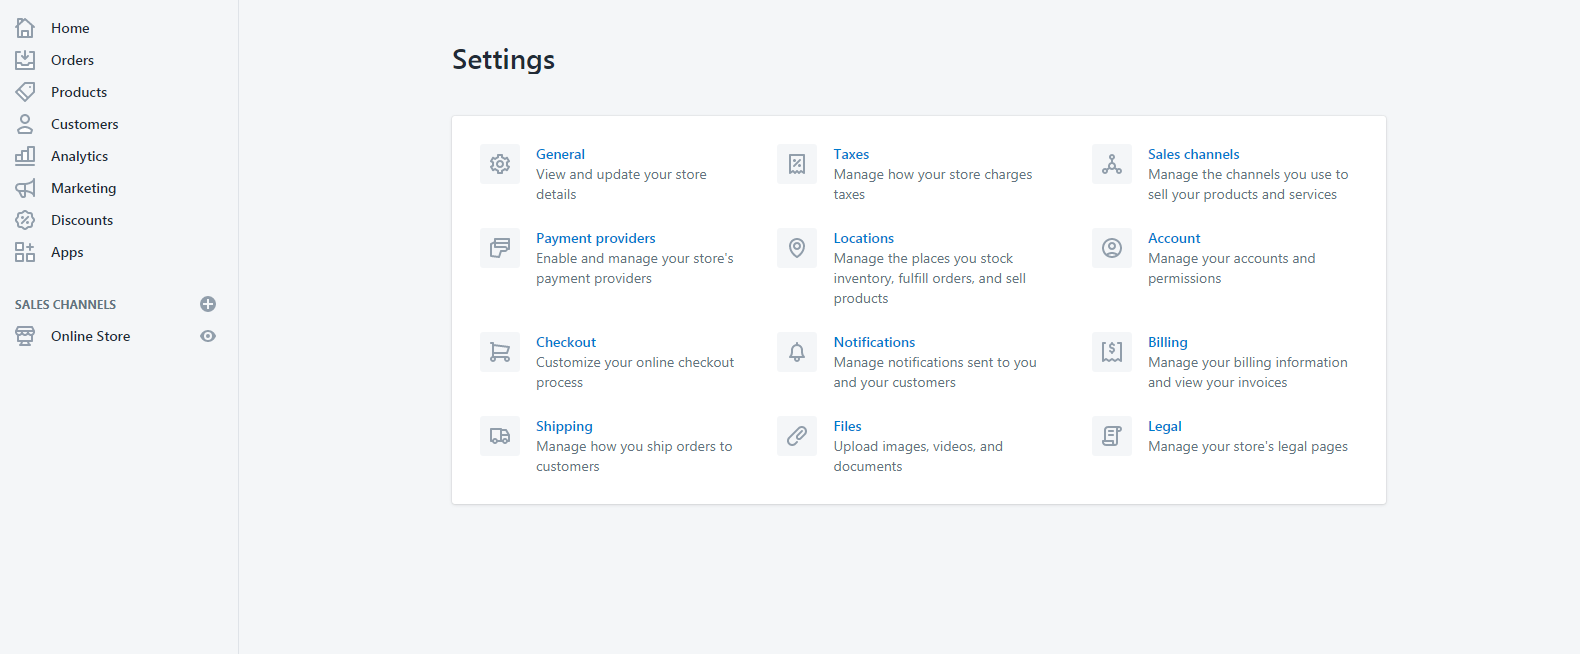 Shopify Partner Dashboard: Settings Page